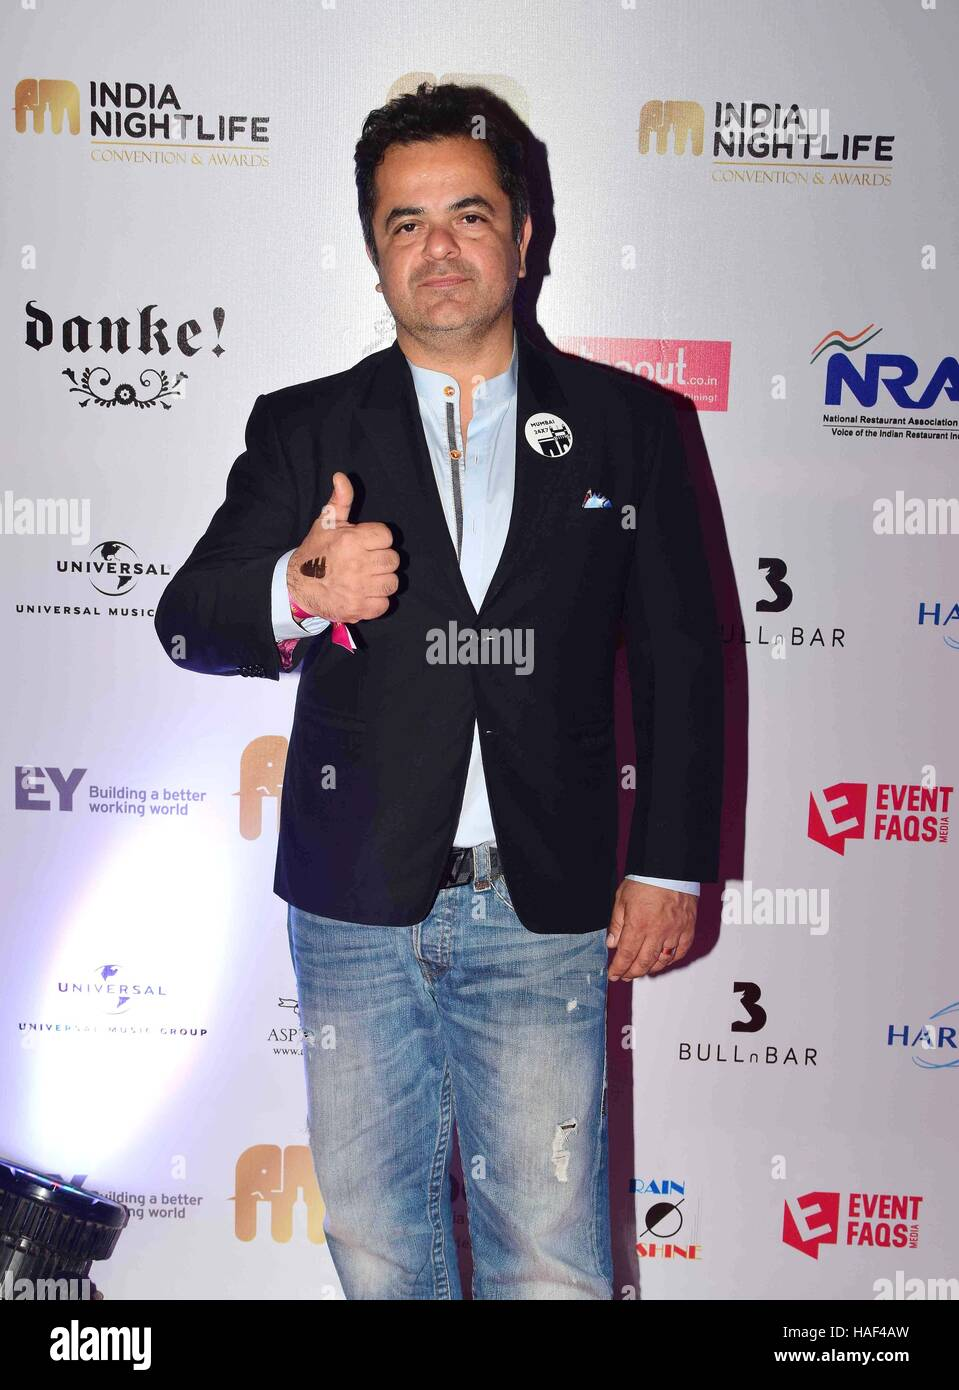 Chef Vicky Ratnani during the India Nightlife Convention Awards in Mumbai, India on September 26, 2016. - Stock Image